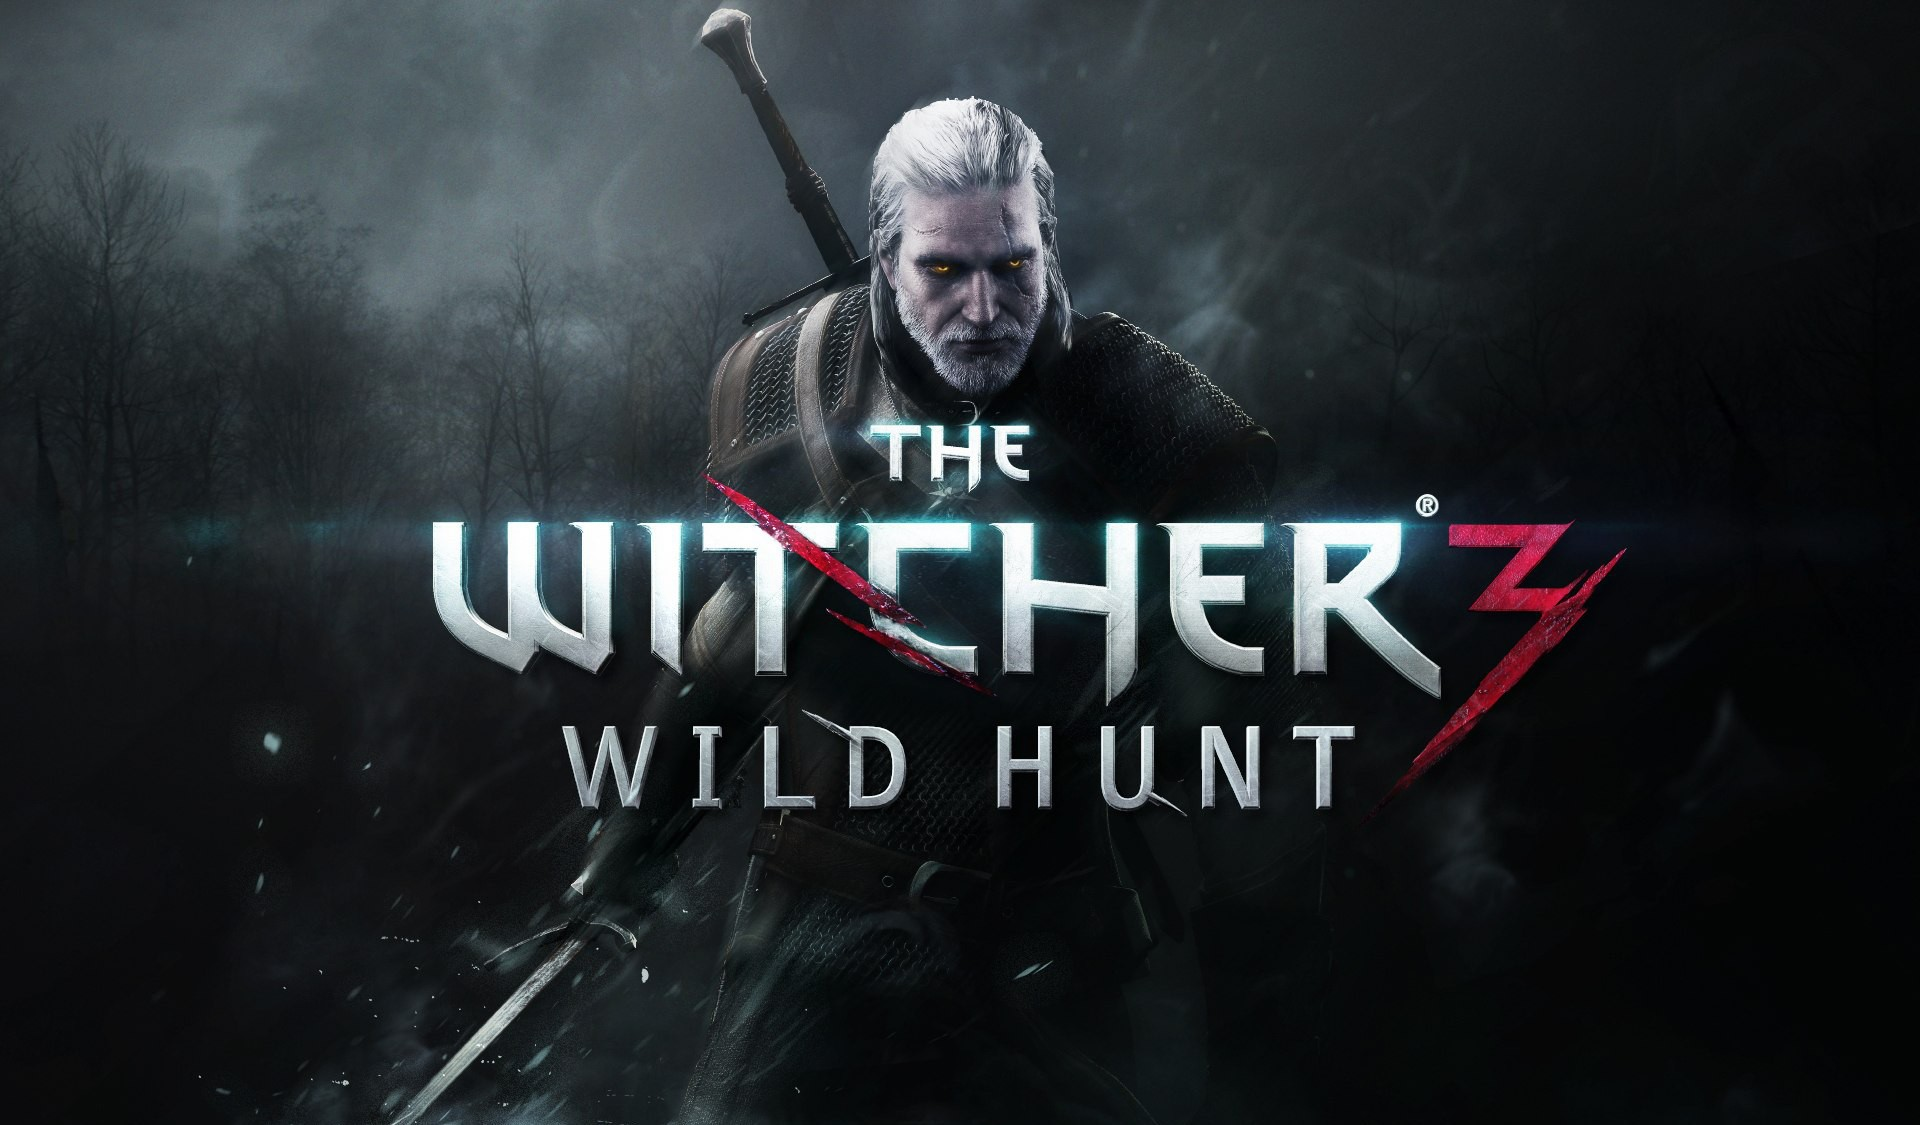 The Witcher 3 The Wild Hunt Delay Was Caused by Lots of Small Errors 467089 2 - اورجینال The Witcher 3: Wild Hunt